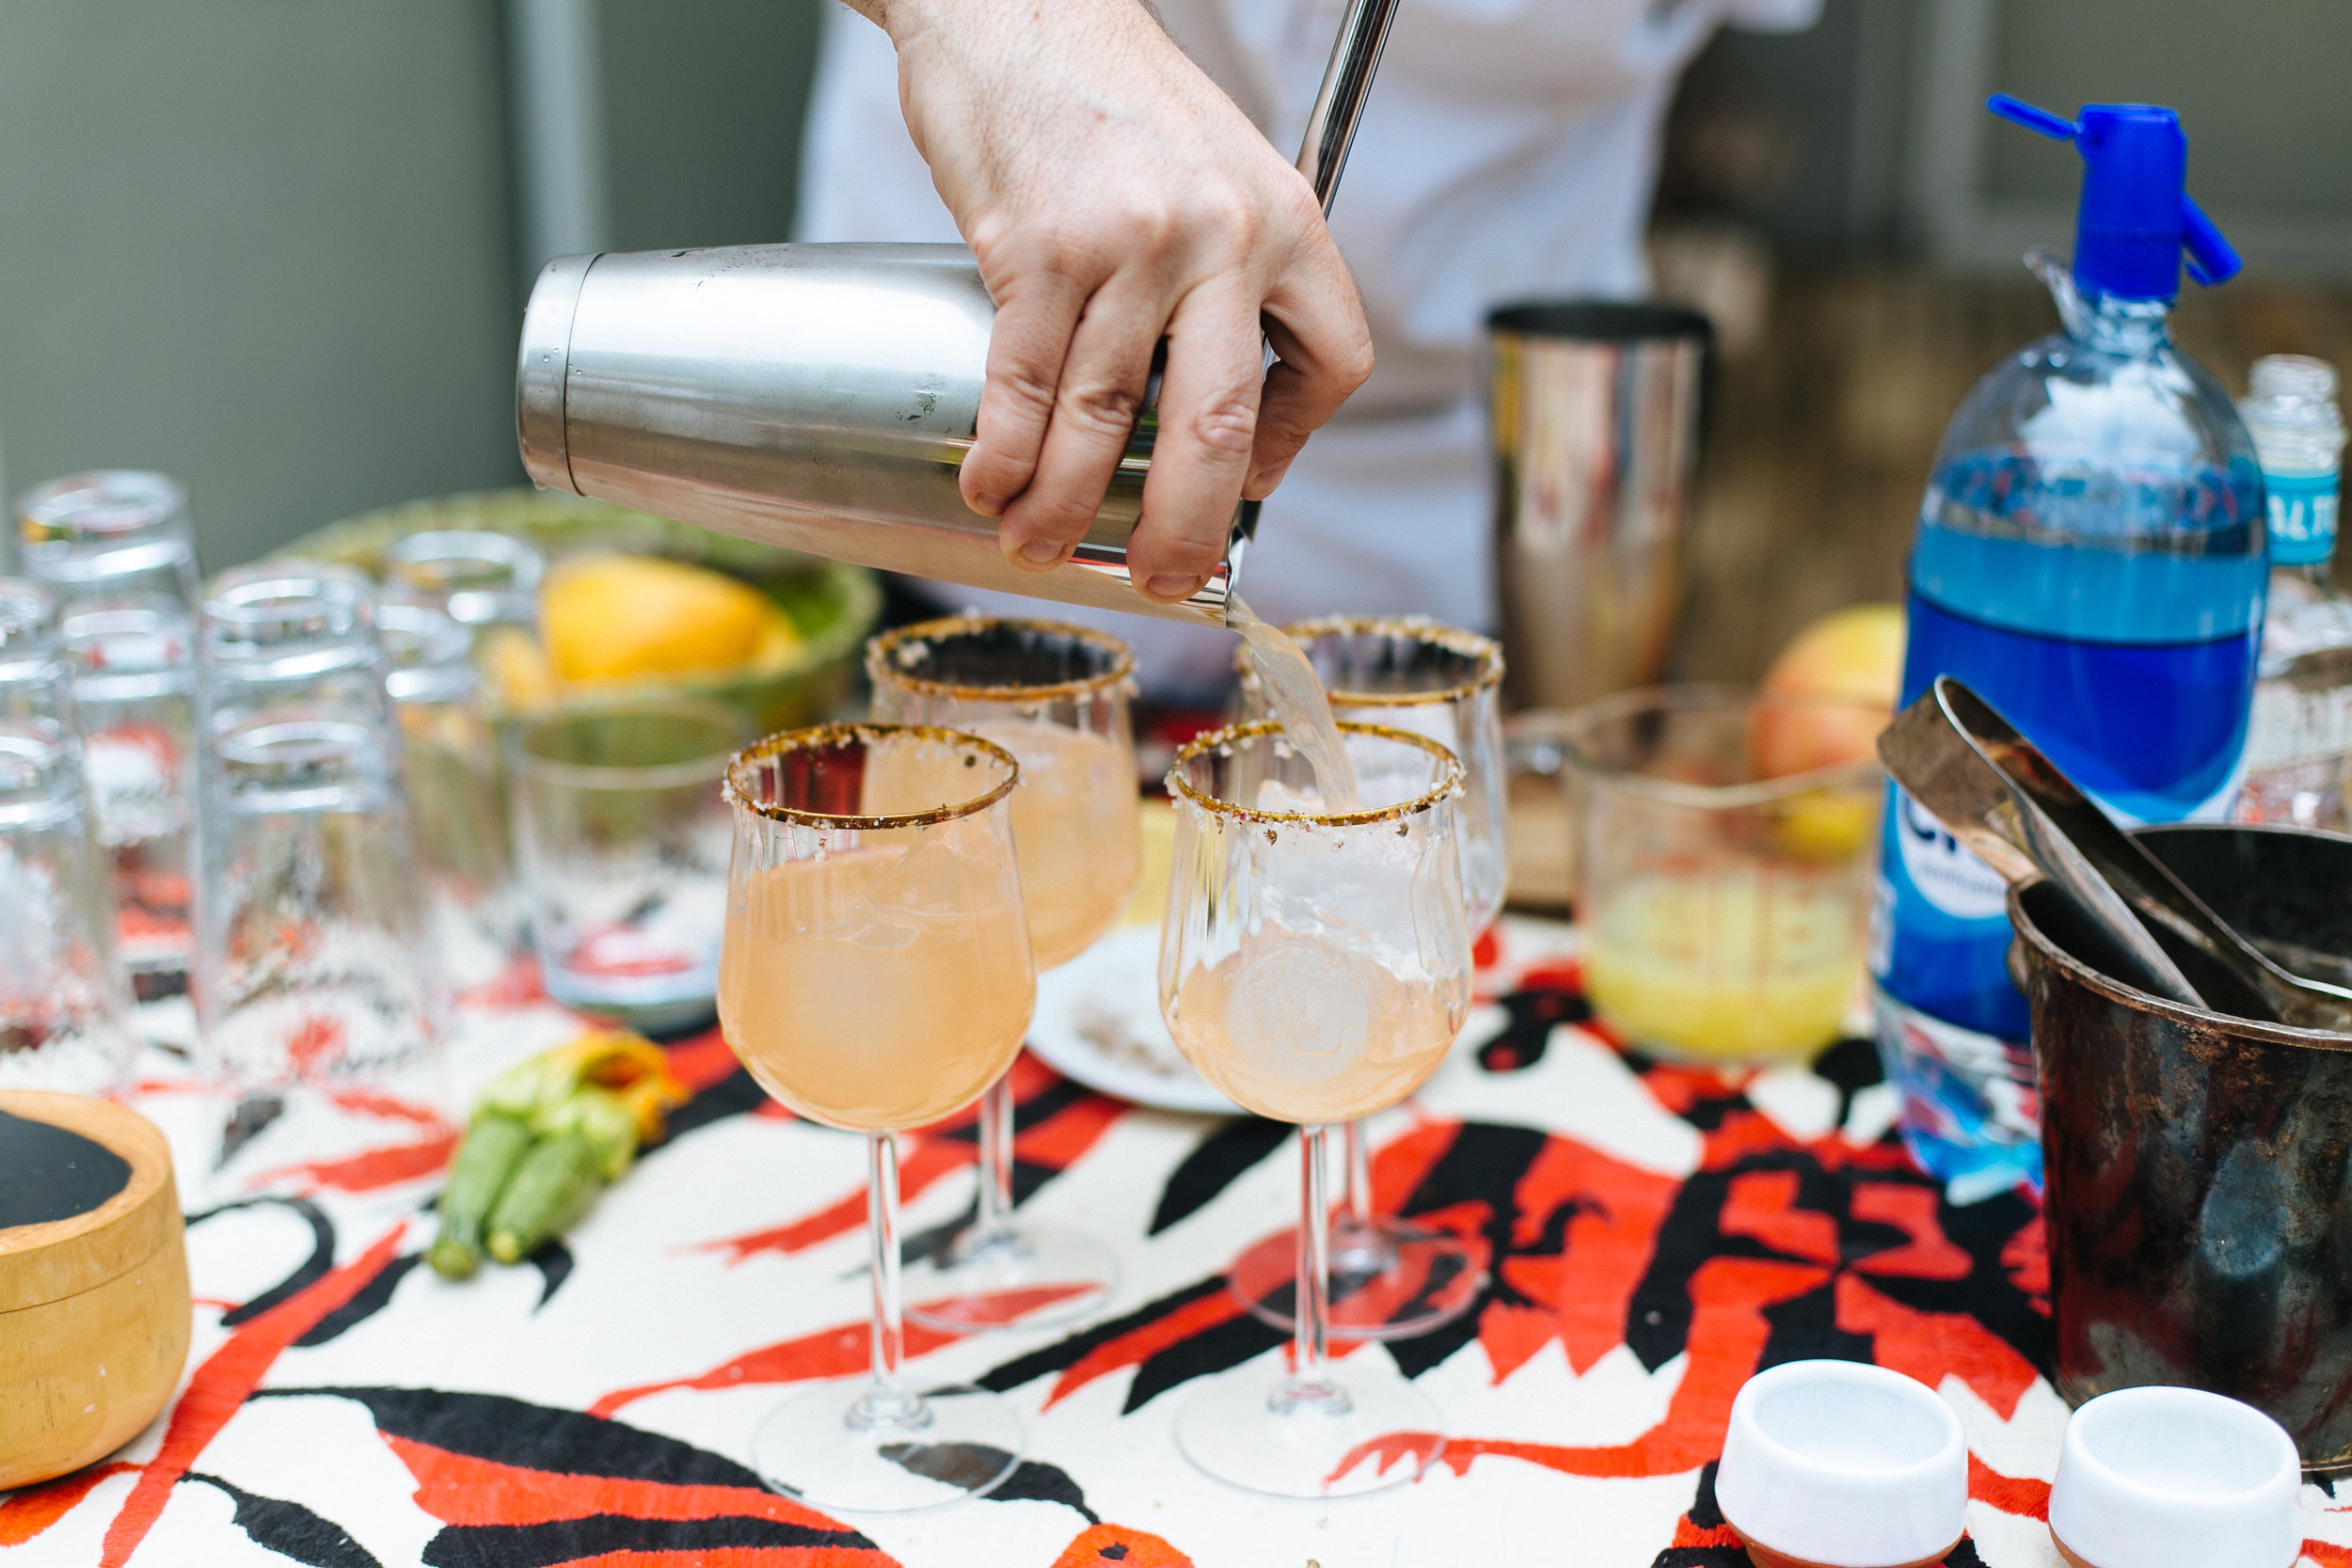 Making cocktails with Altos tequila.